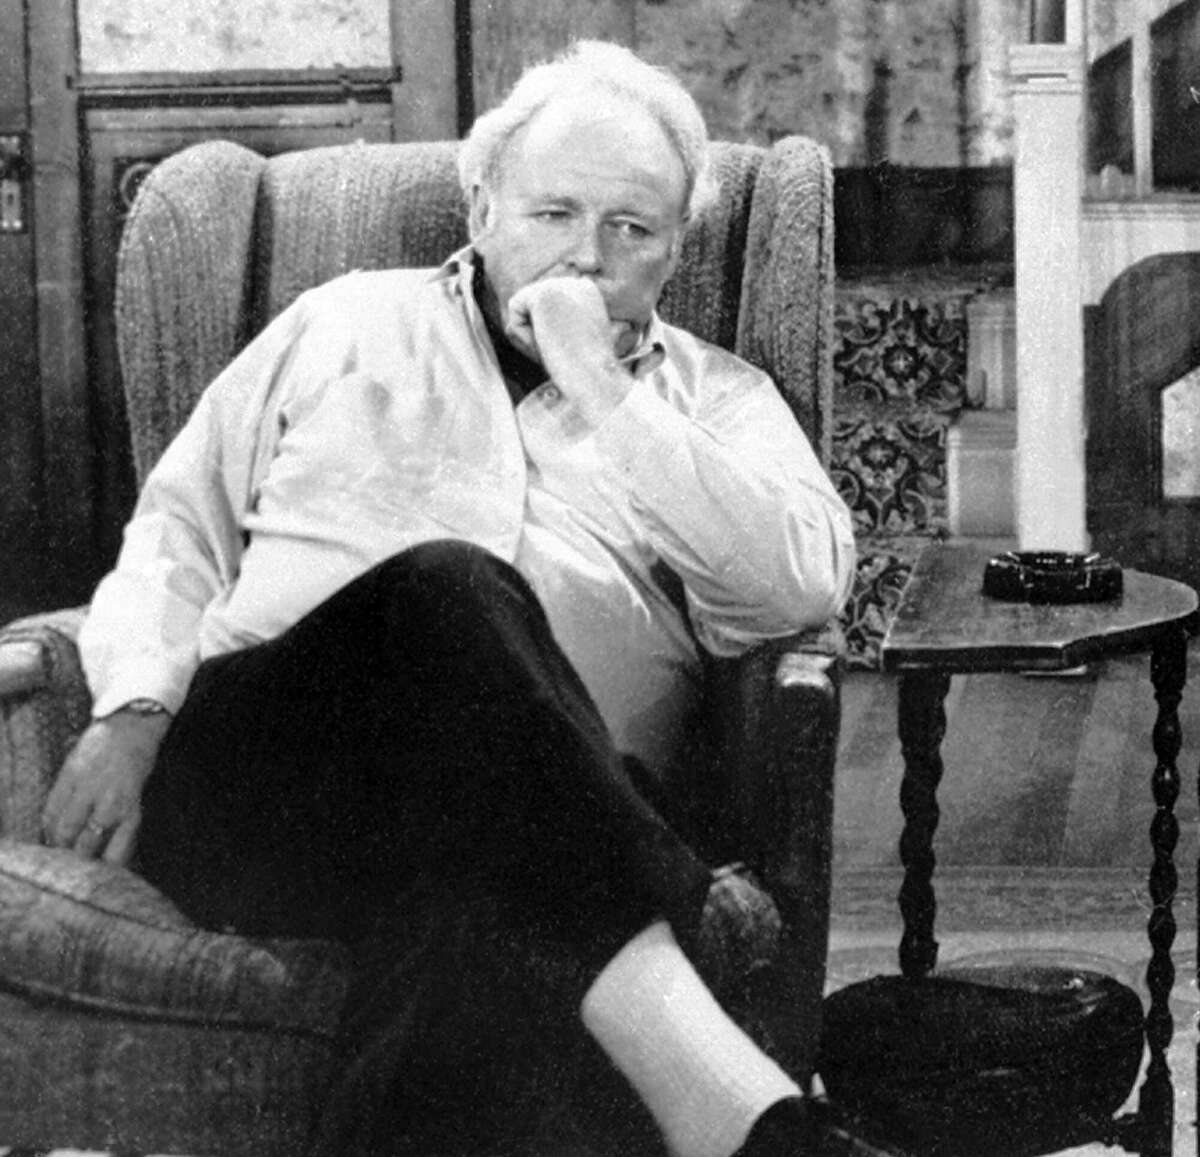 Because of stereotypes - like the kind offered by Archie Bunker, played by Carroll O'Connor, in the television series